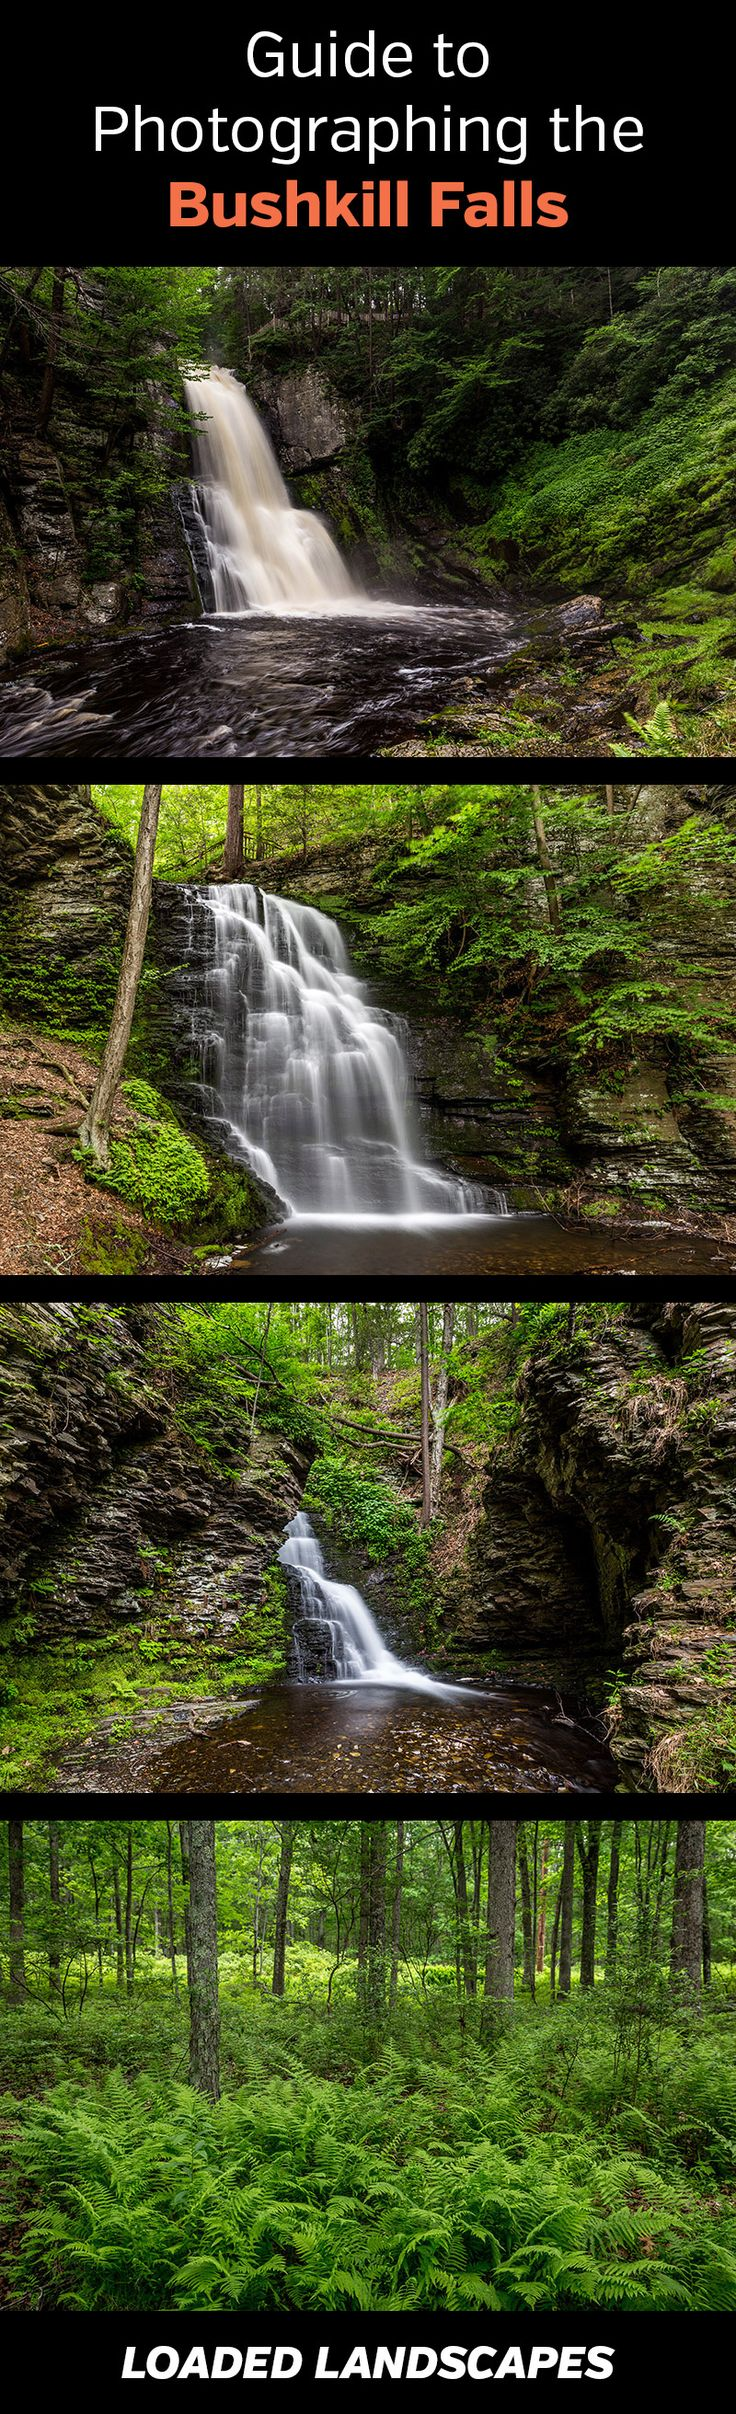 Guide to Photographing Bushkill Falls (Pennsylvania)